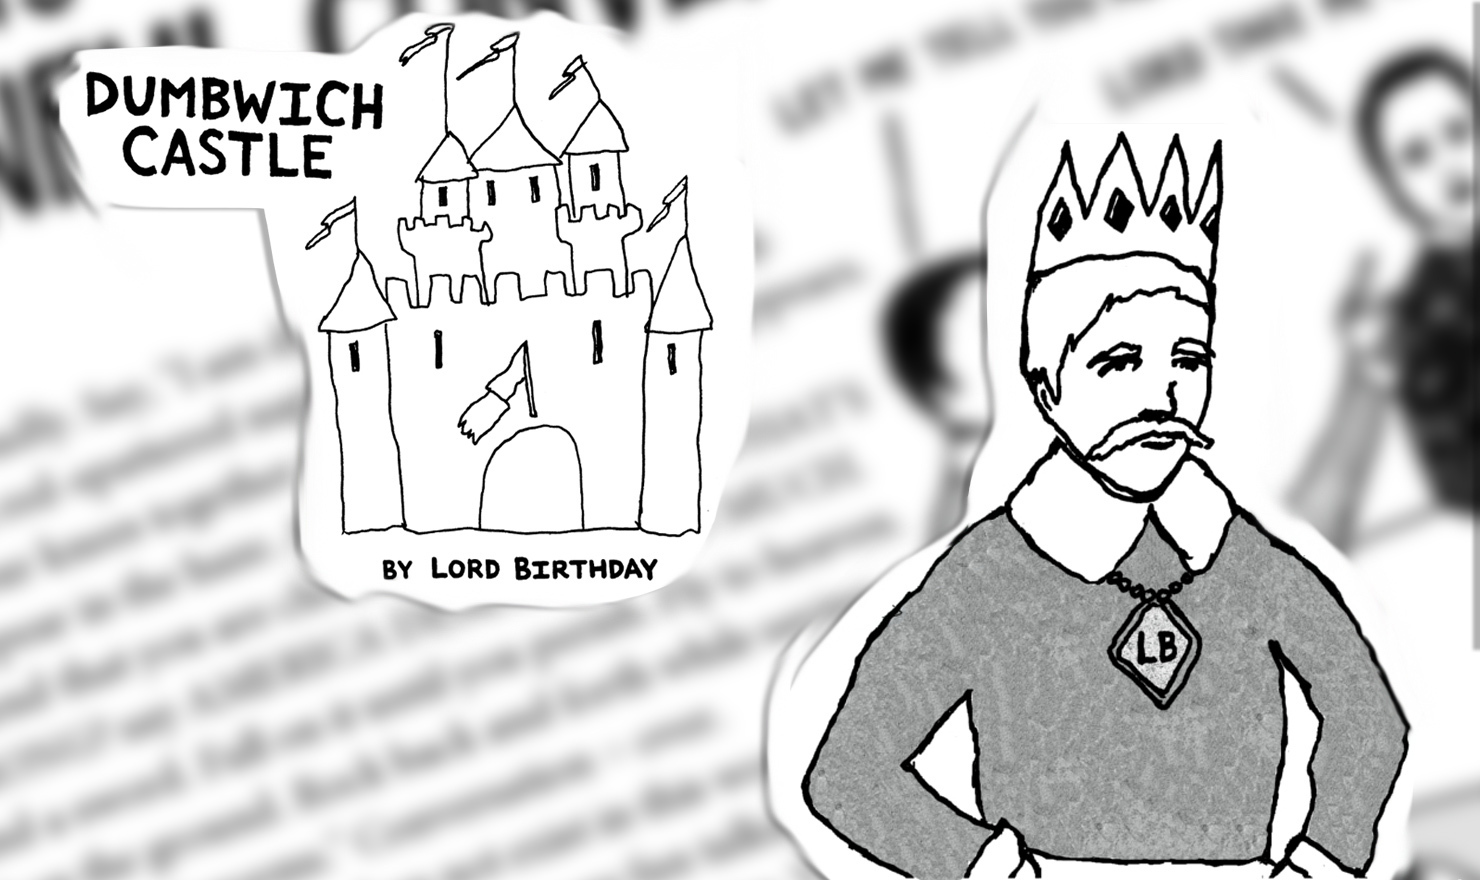 Meet Your Creator: Lord Birthday Of 'Dumbwich Castle'